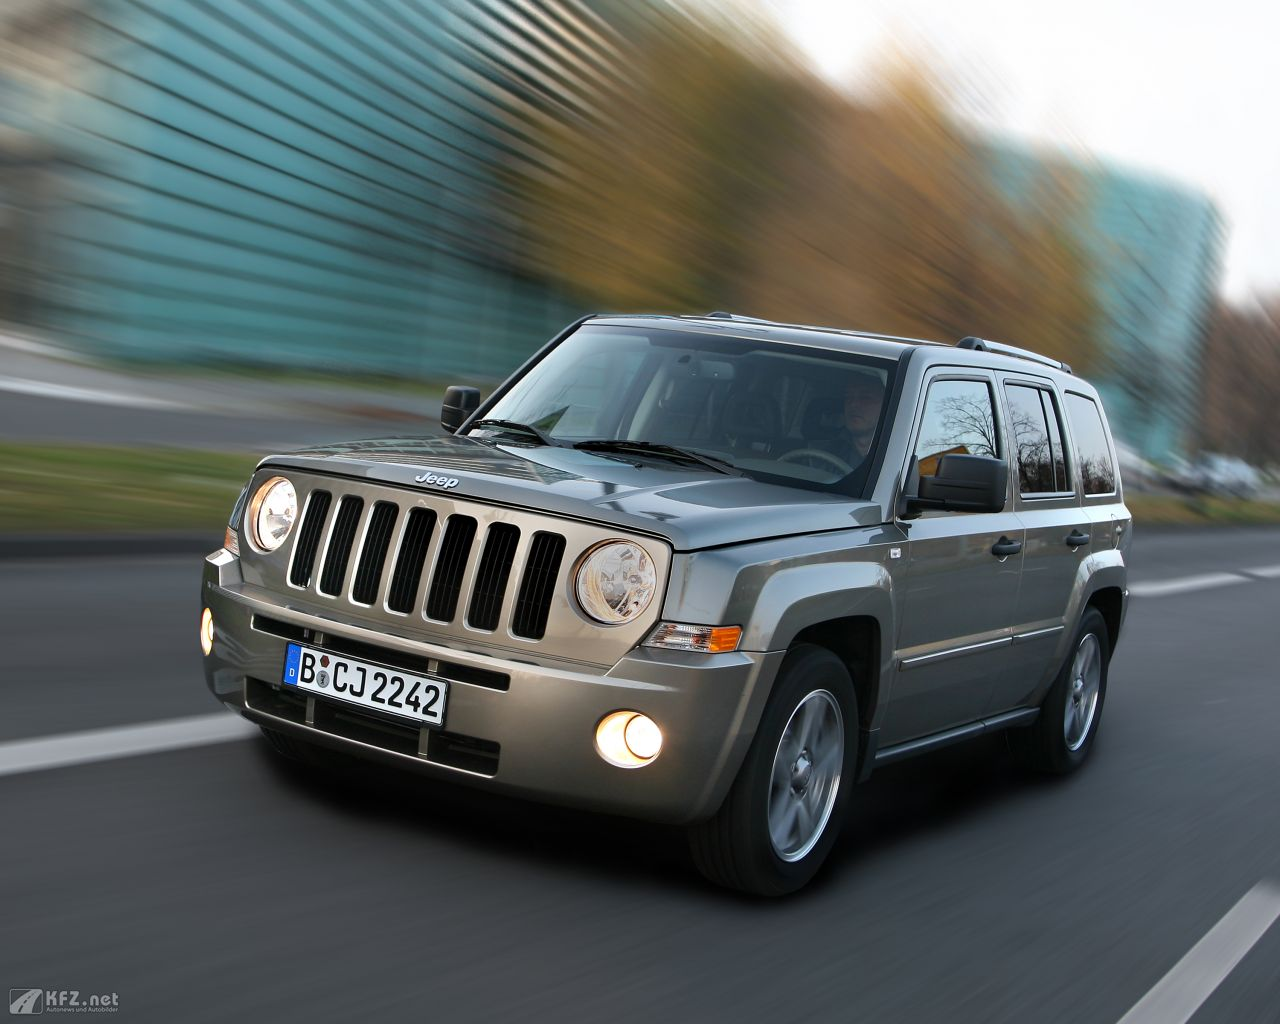 jeep-patriot-1280x1024-1